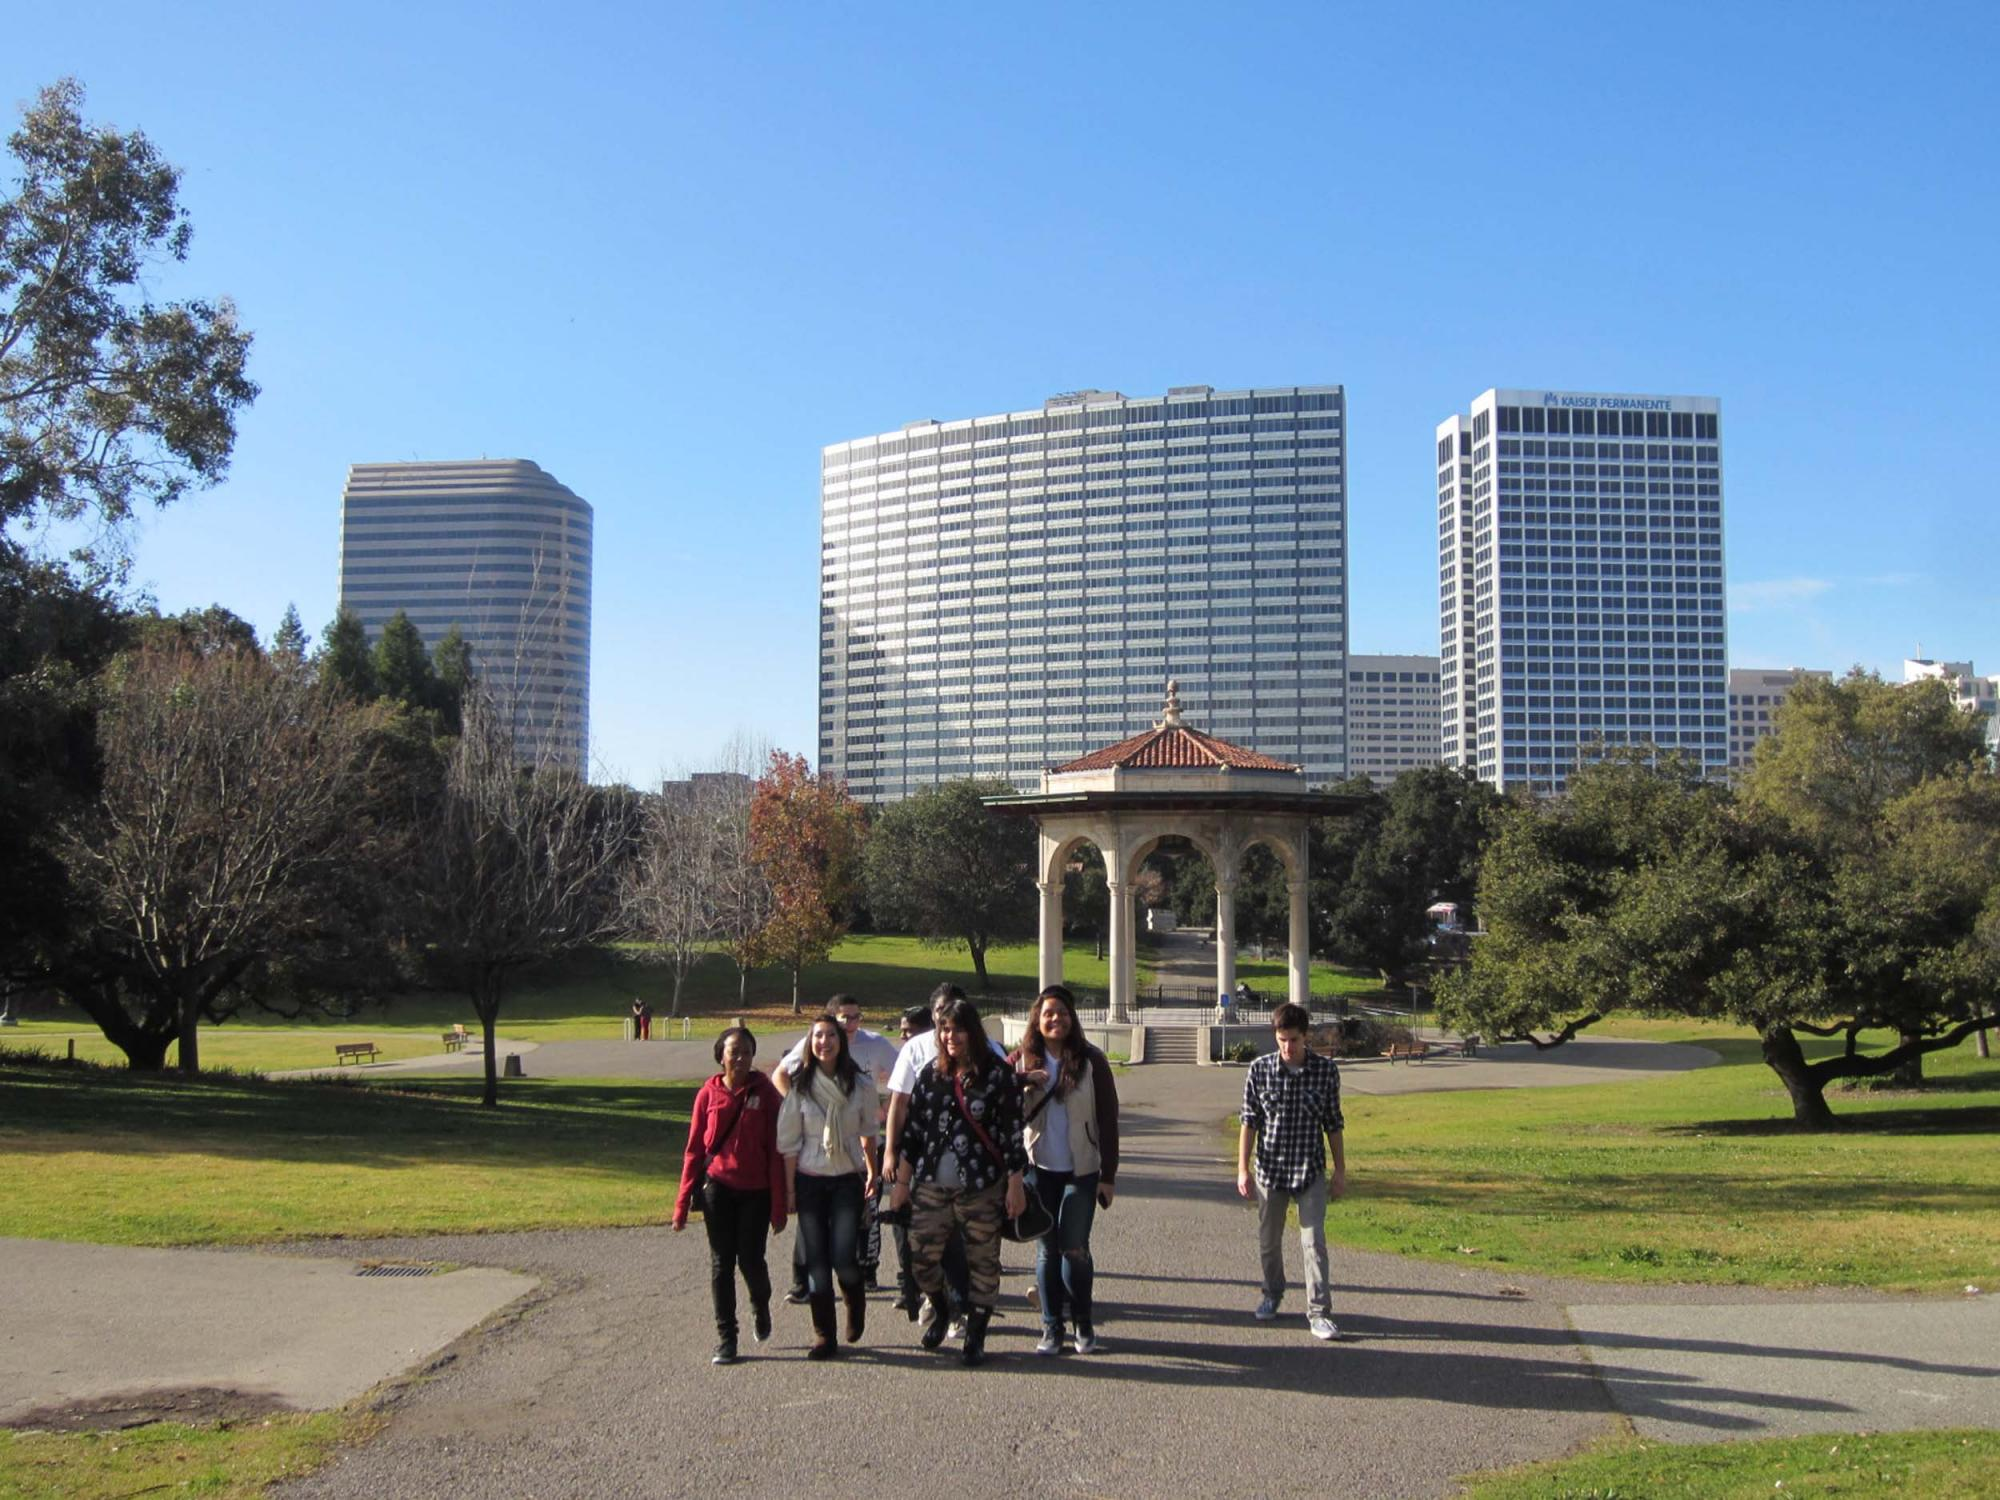 Walking through Lakeside Park, with the Kaiser Center and the Edoff Memorial Band Stand seen in the background.